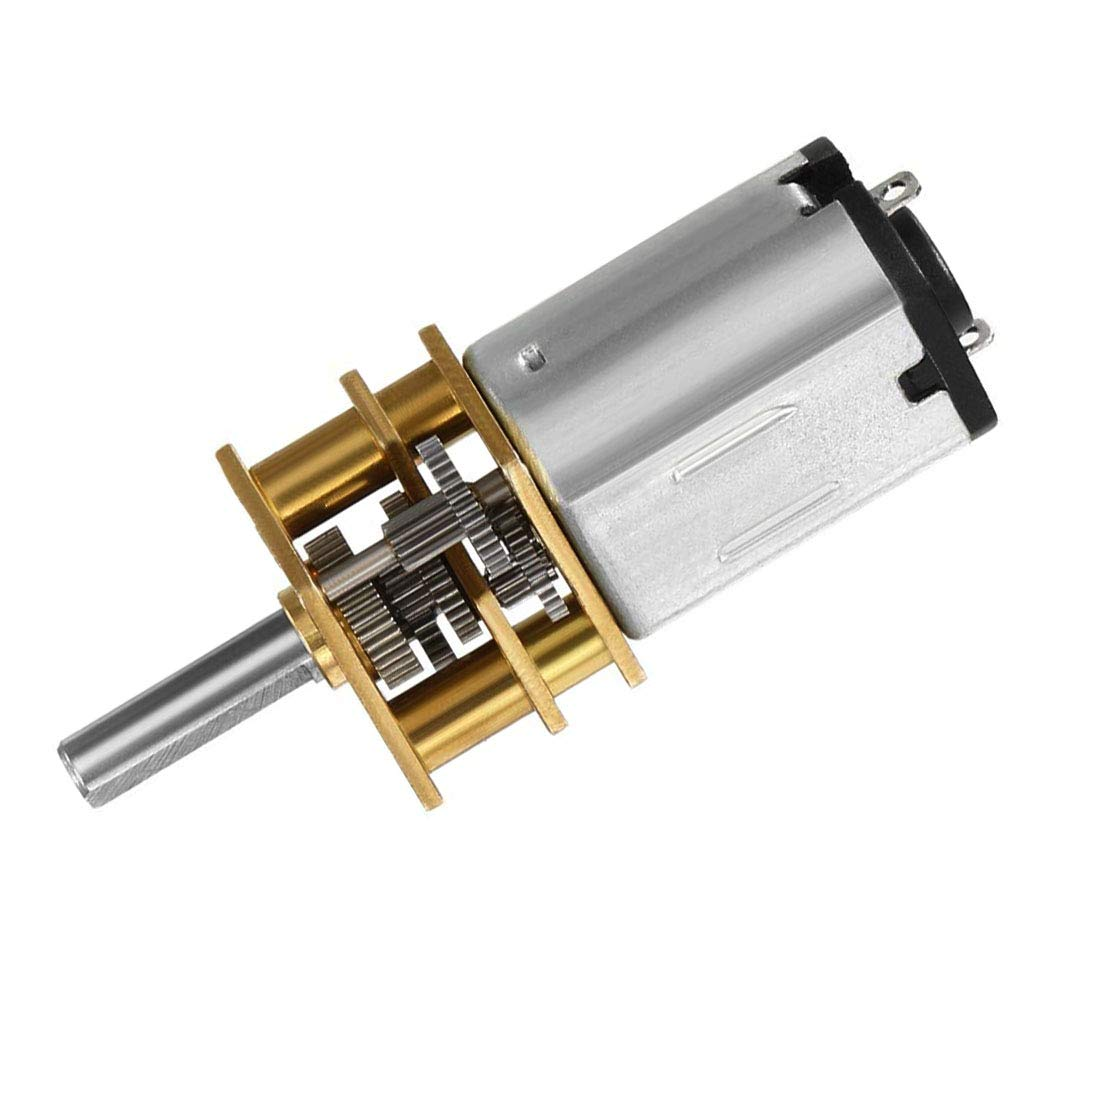 DC 12V 30RPM Mini Electric Gear Motor Gearwheel 3mm Shaft Box Motor